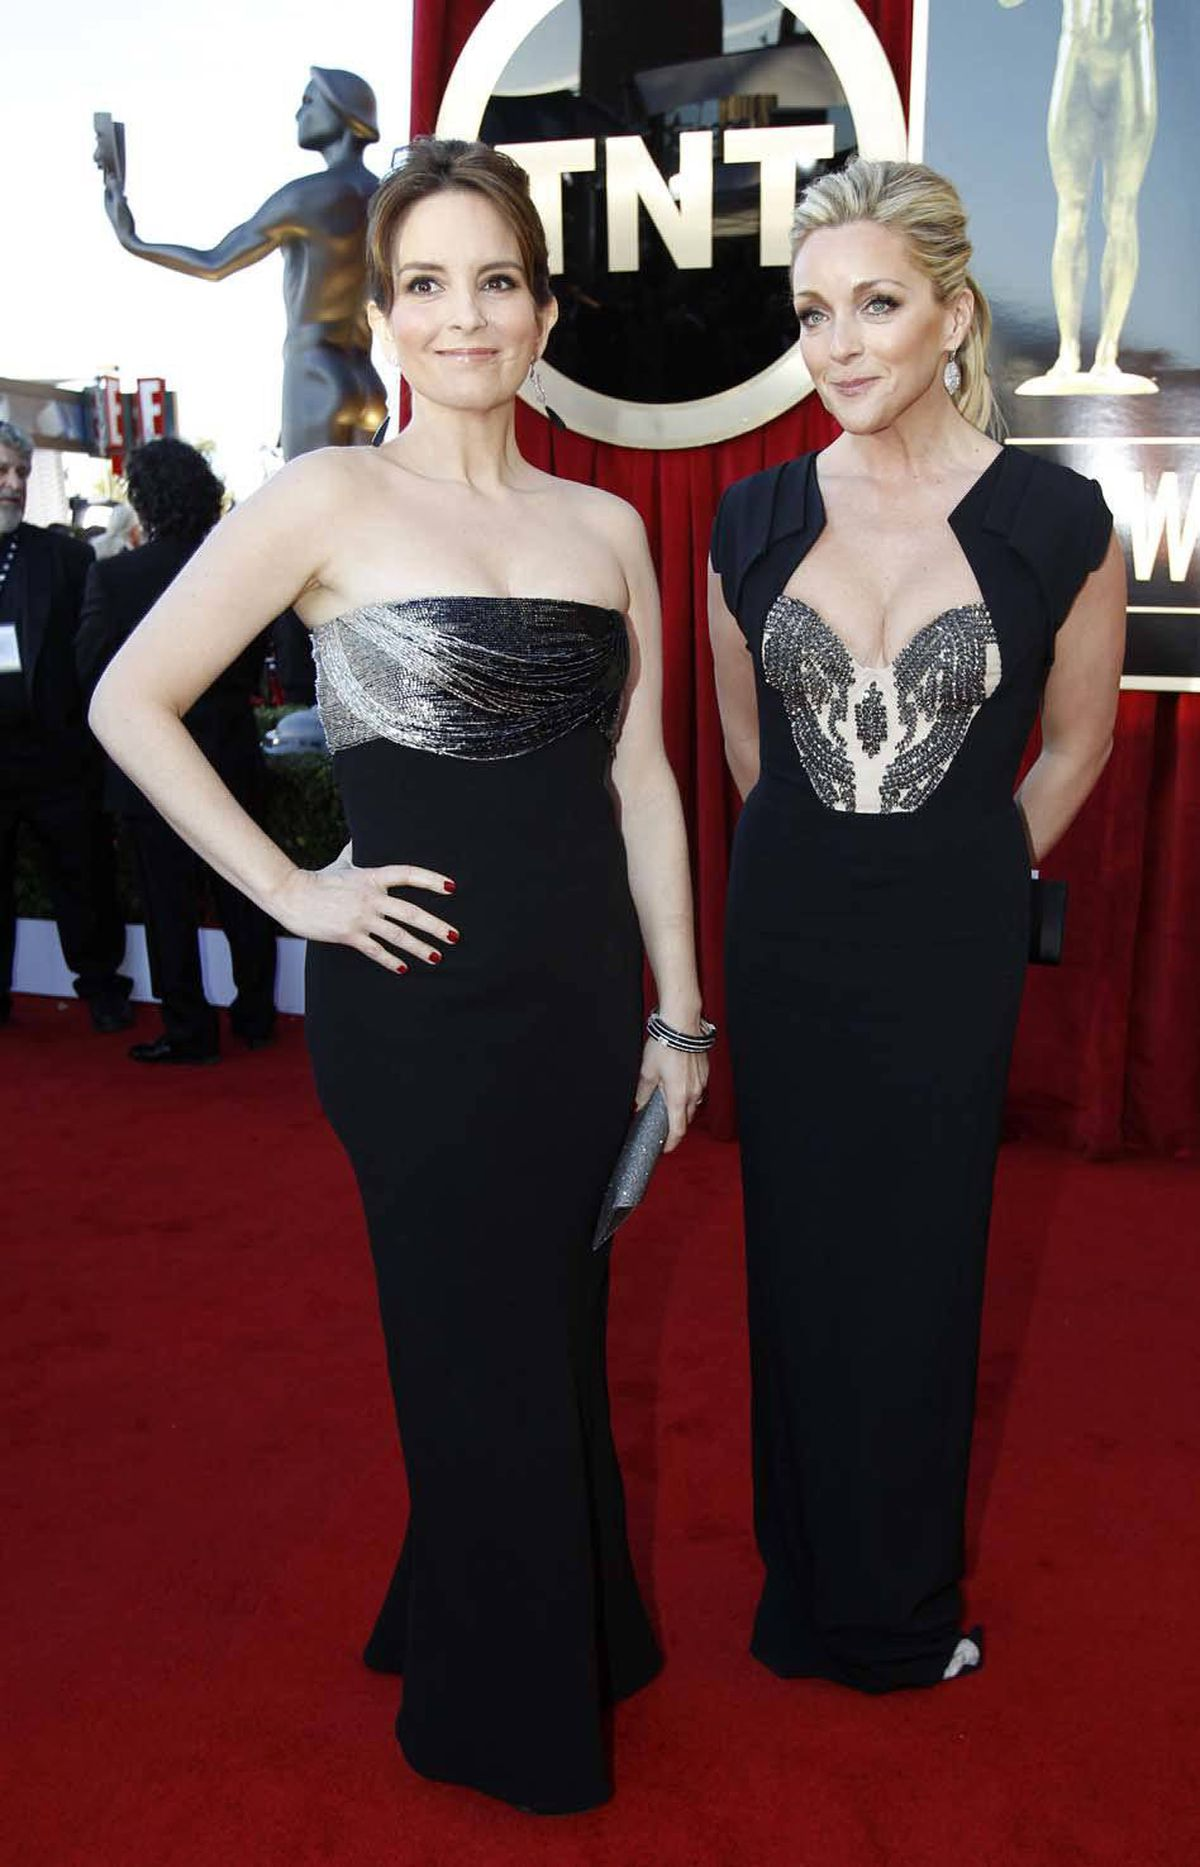 Tina Fey drives a convertible and Jane Krakowski rides a motorbike at the SAG awards in Los Angeles on Sunday.